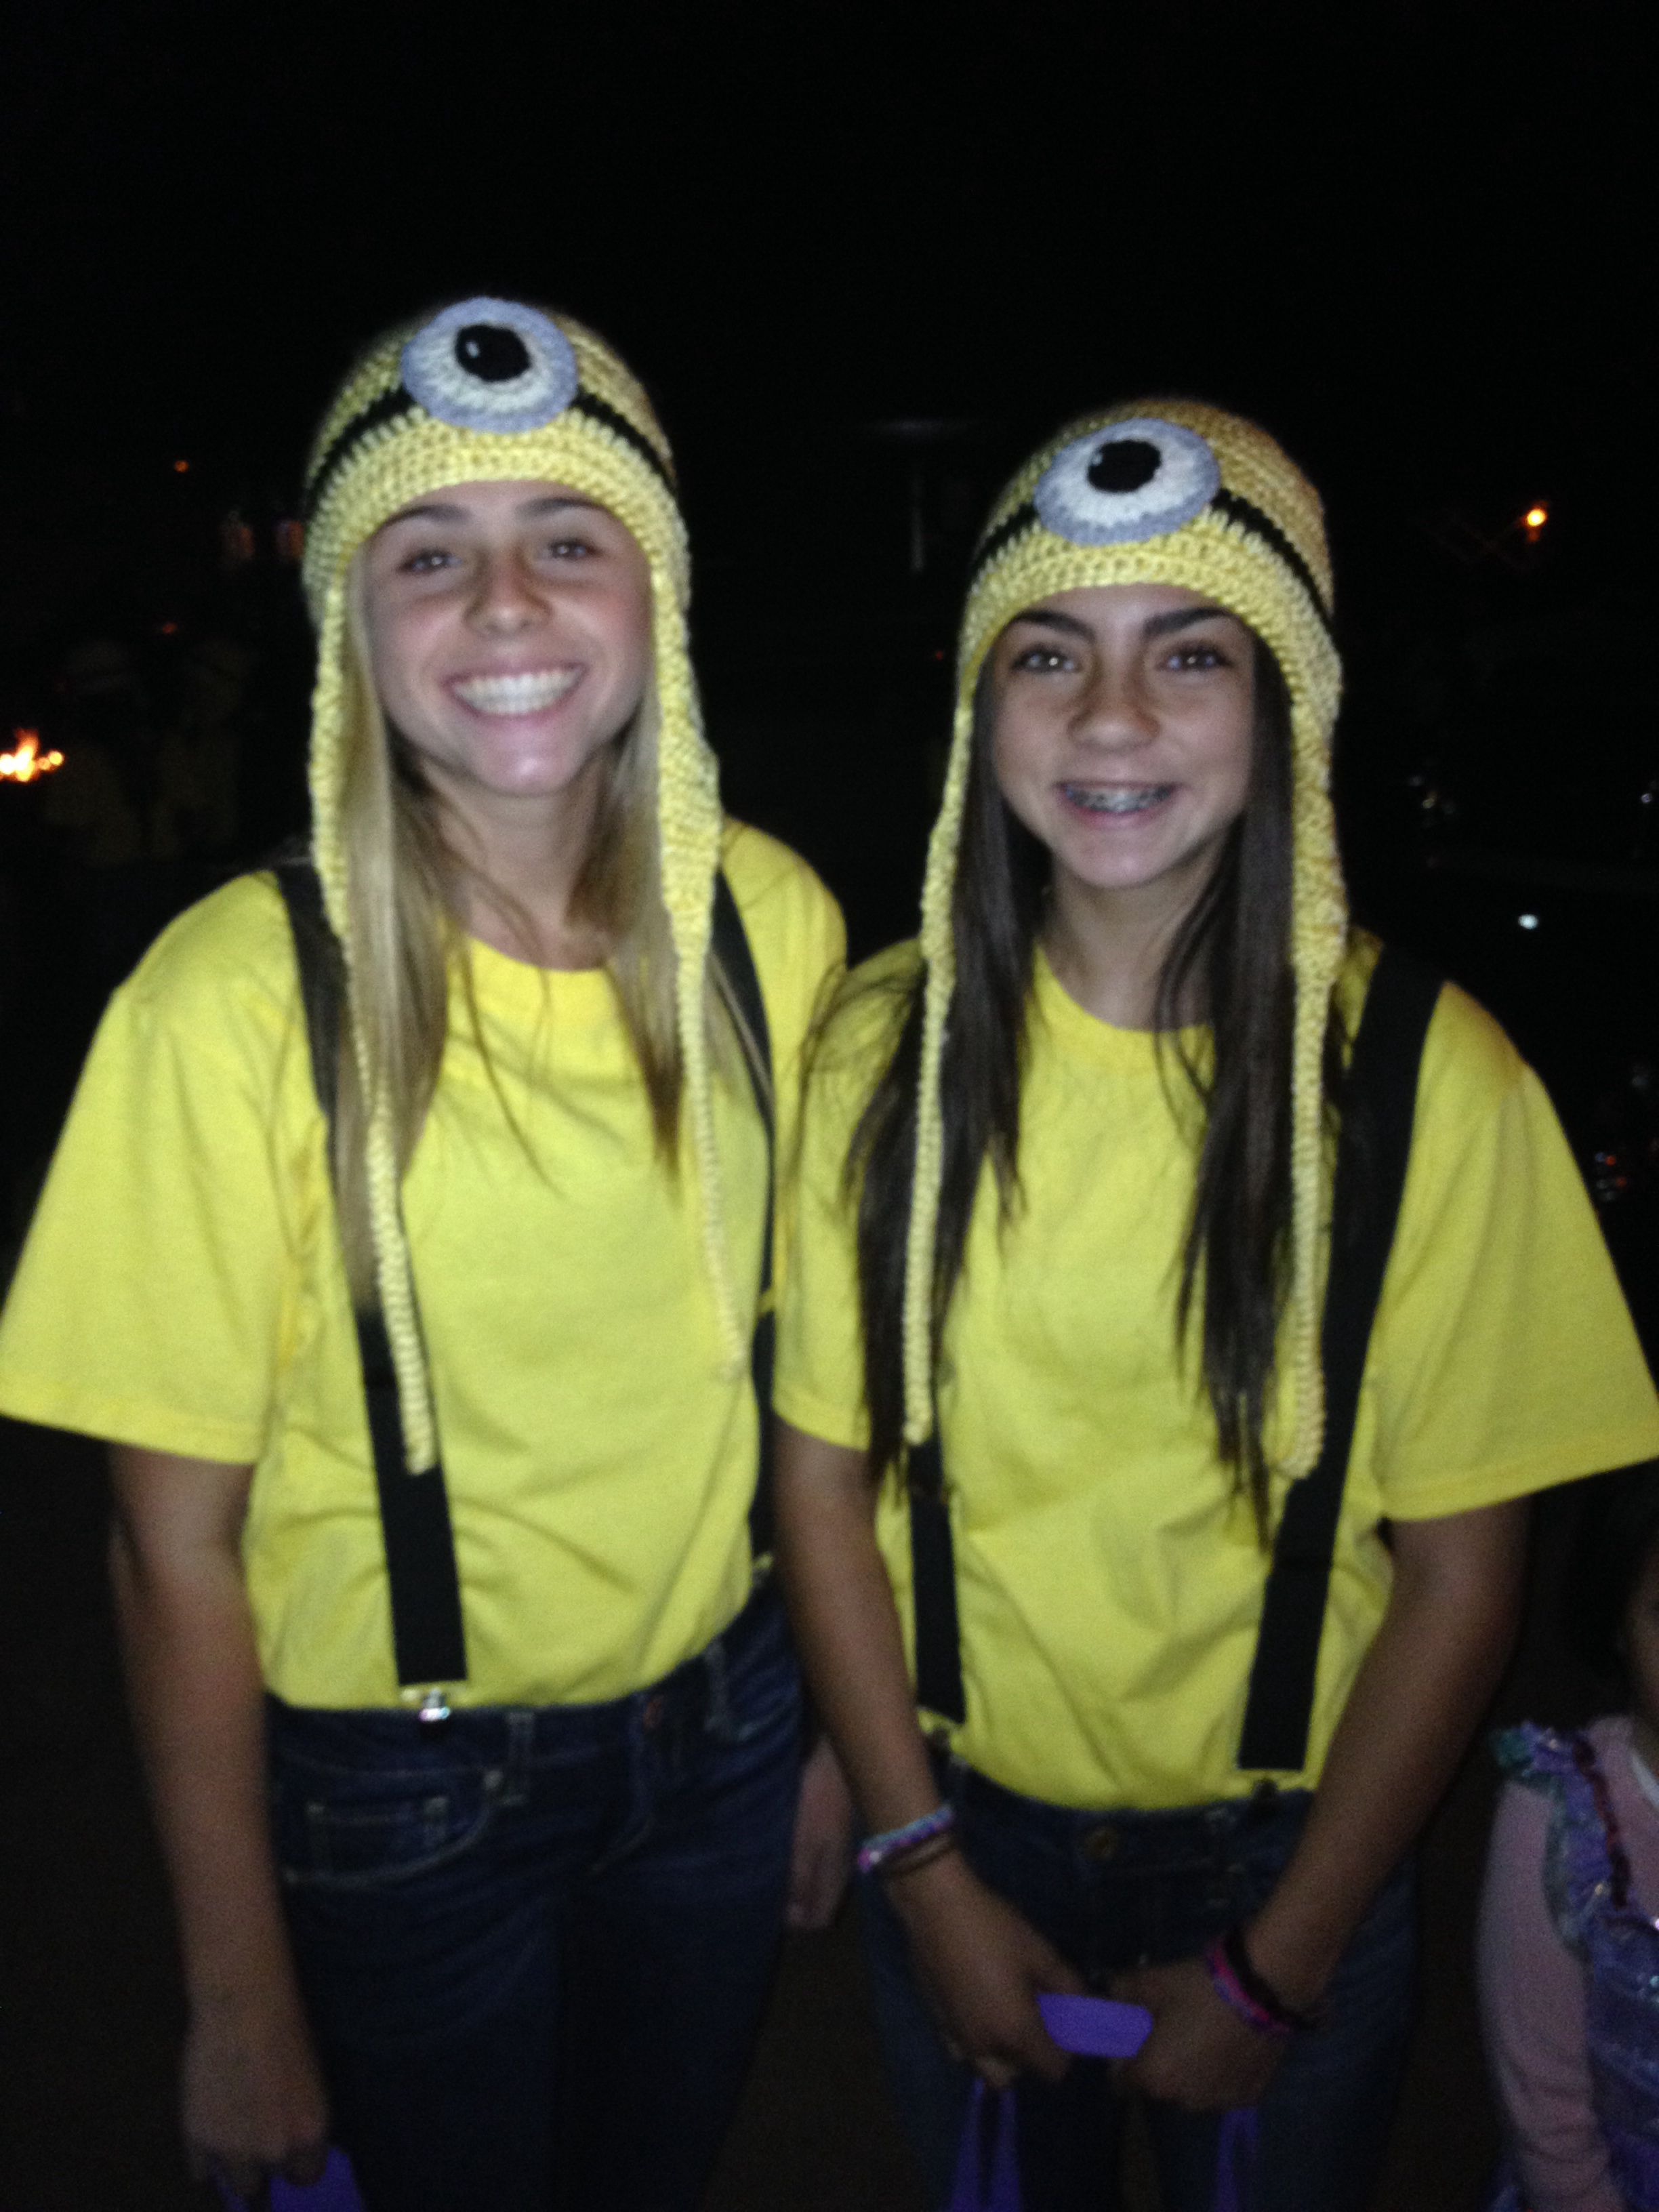 Cutest minions ever!